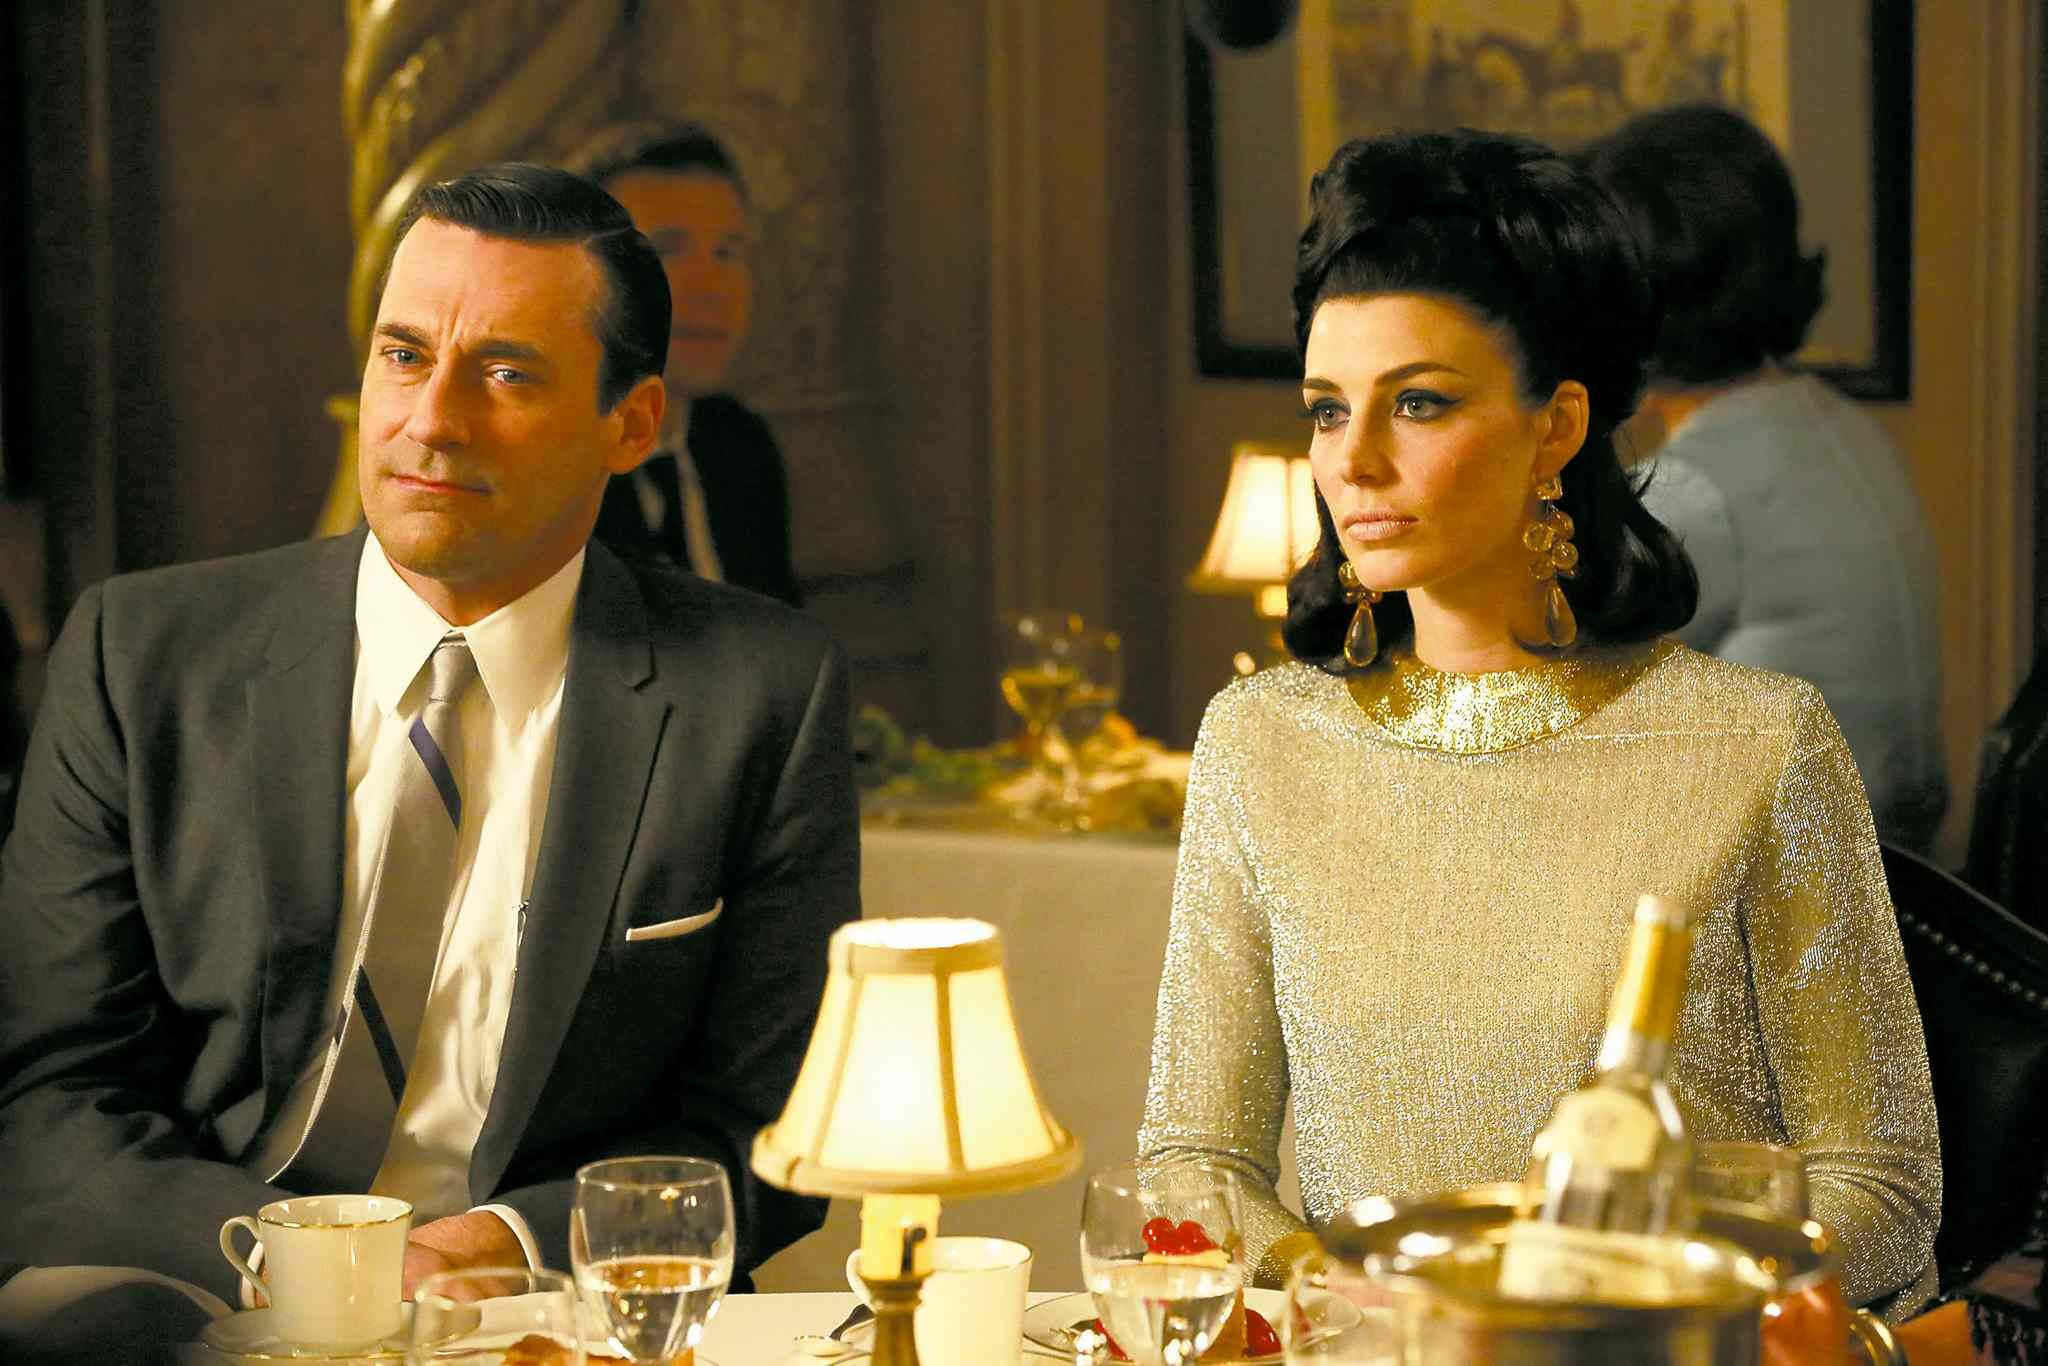 This TV publicity image released by AMC shows Jon Hamm as Don Draper, left, and Jessica Paré as Megan Draper in a scene from